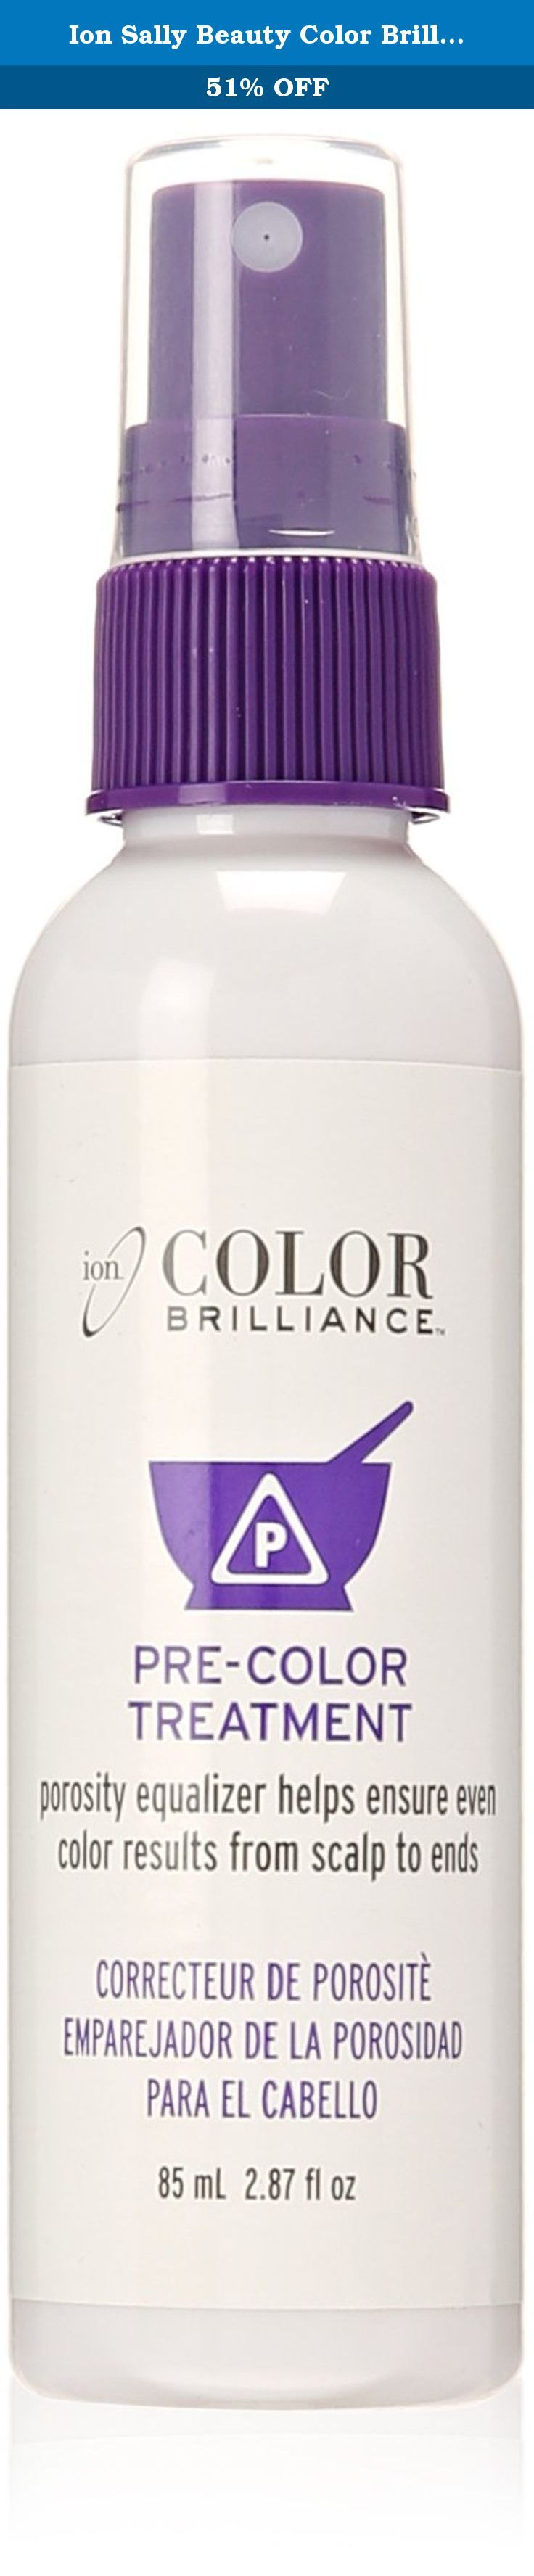 Ion Sally Beauty Color Brilliance Pre-Color Treatment. The ion Color Brilliance Pre-Color Treatment is a state of the art formula that helps to even the porosity of the hair prior to tinting, lightening, permanent waving or relaxing. The alpha hydroxy acids and citrus extracts help to ensure even color results from scalp to ends.